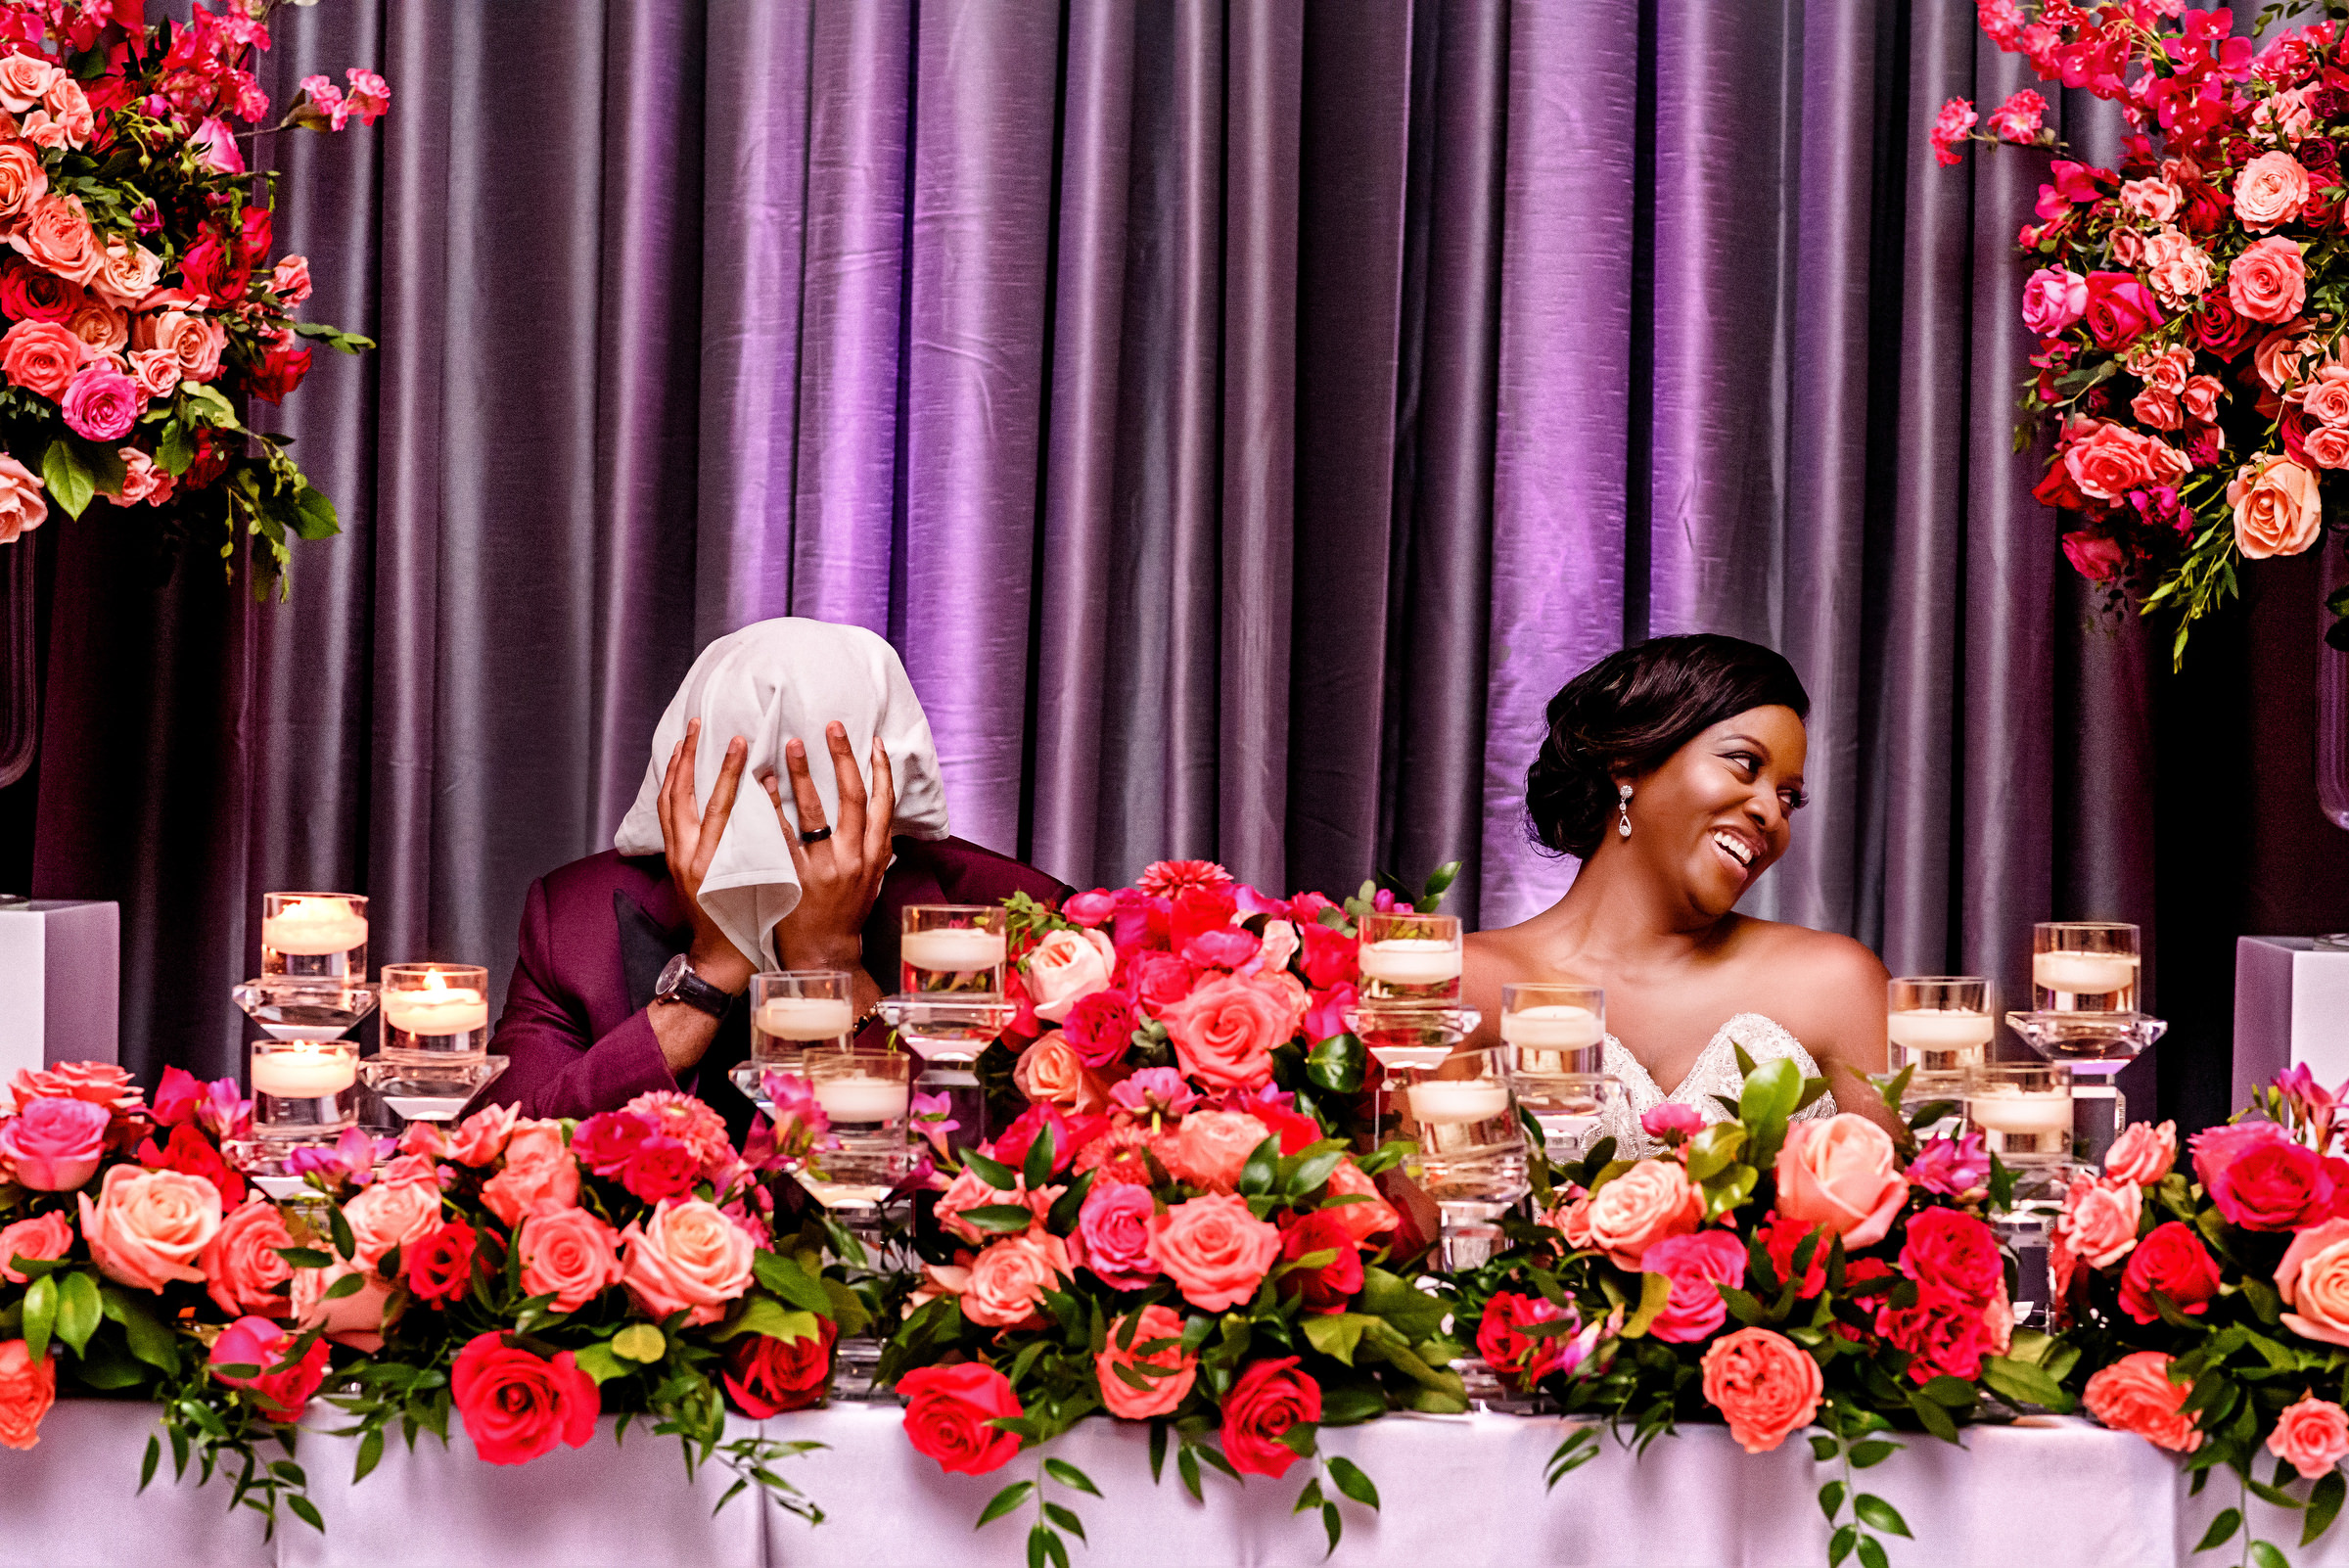 Hilarous photo of bride laughing and groom hiding during toast by Kirth Bobb - D.C. photographer